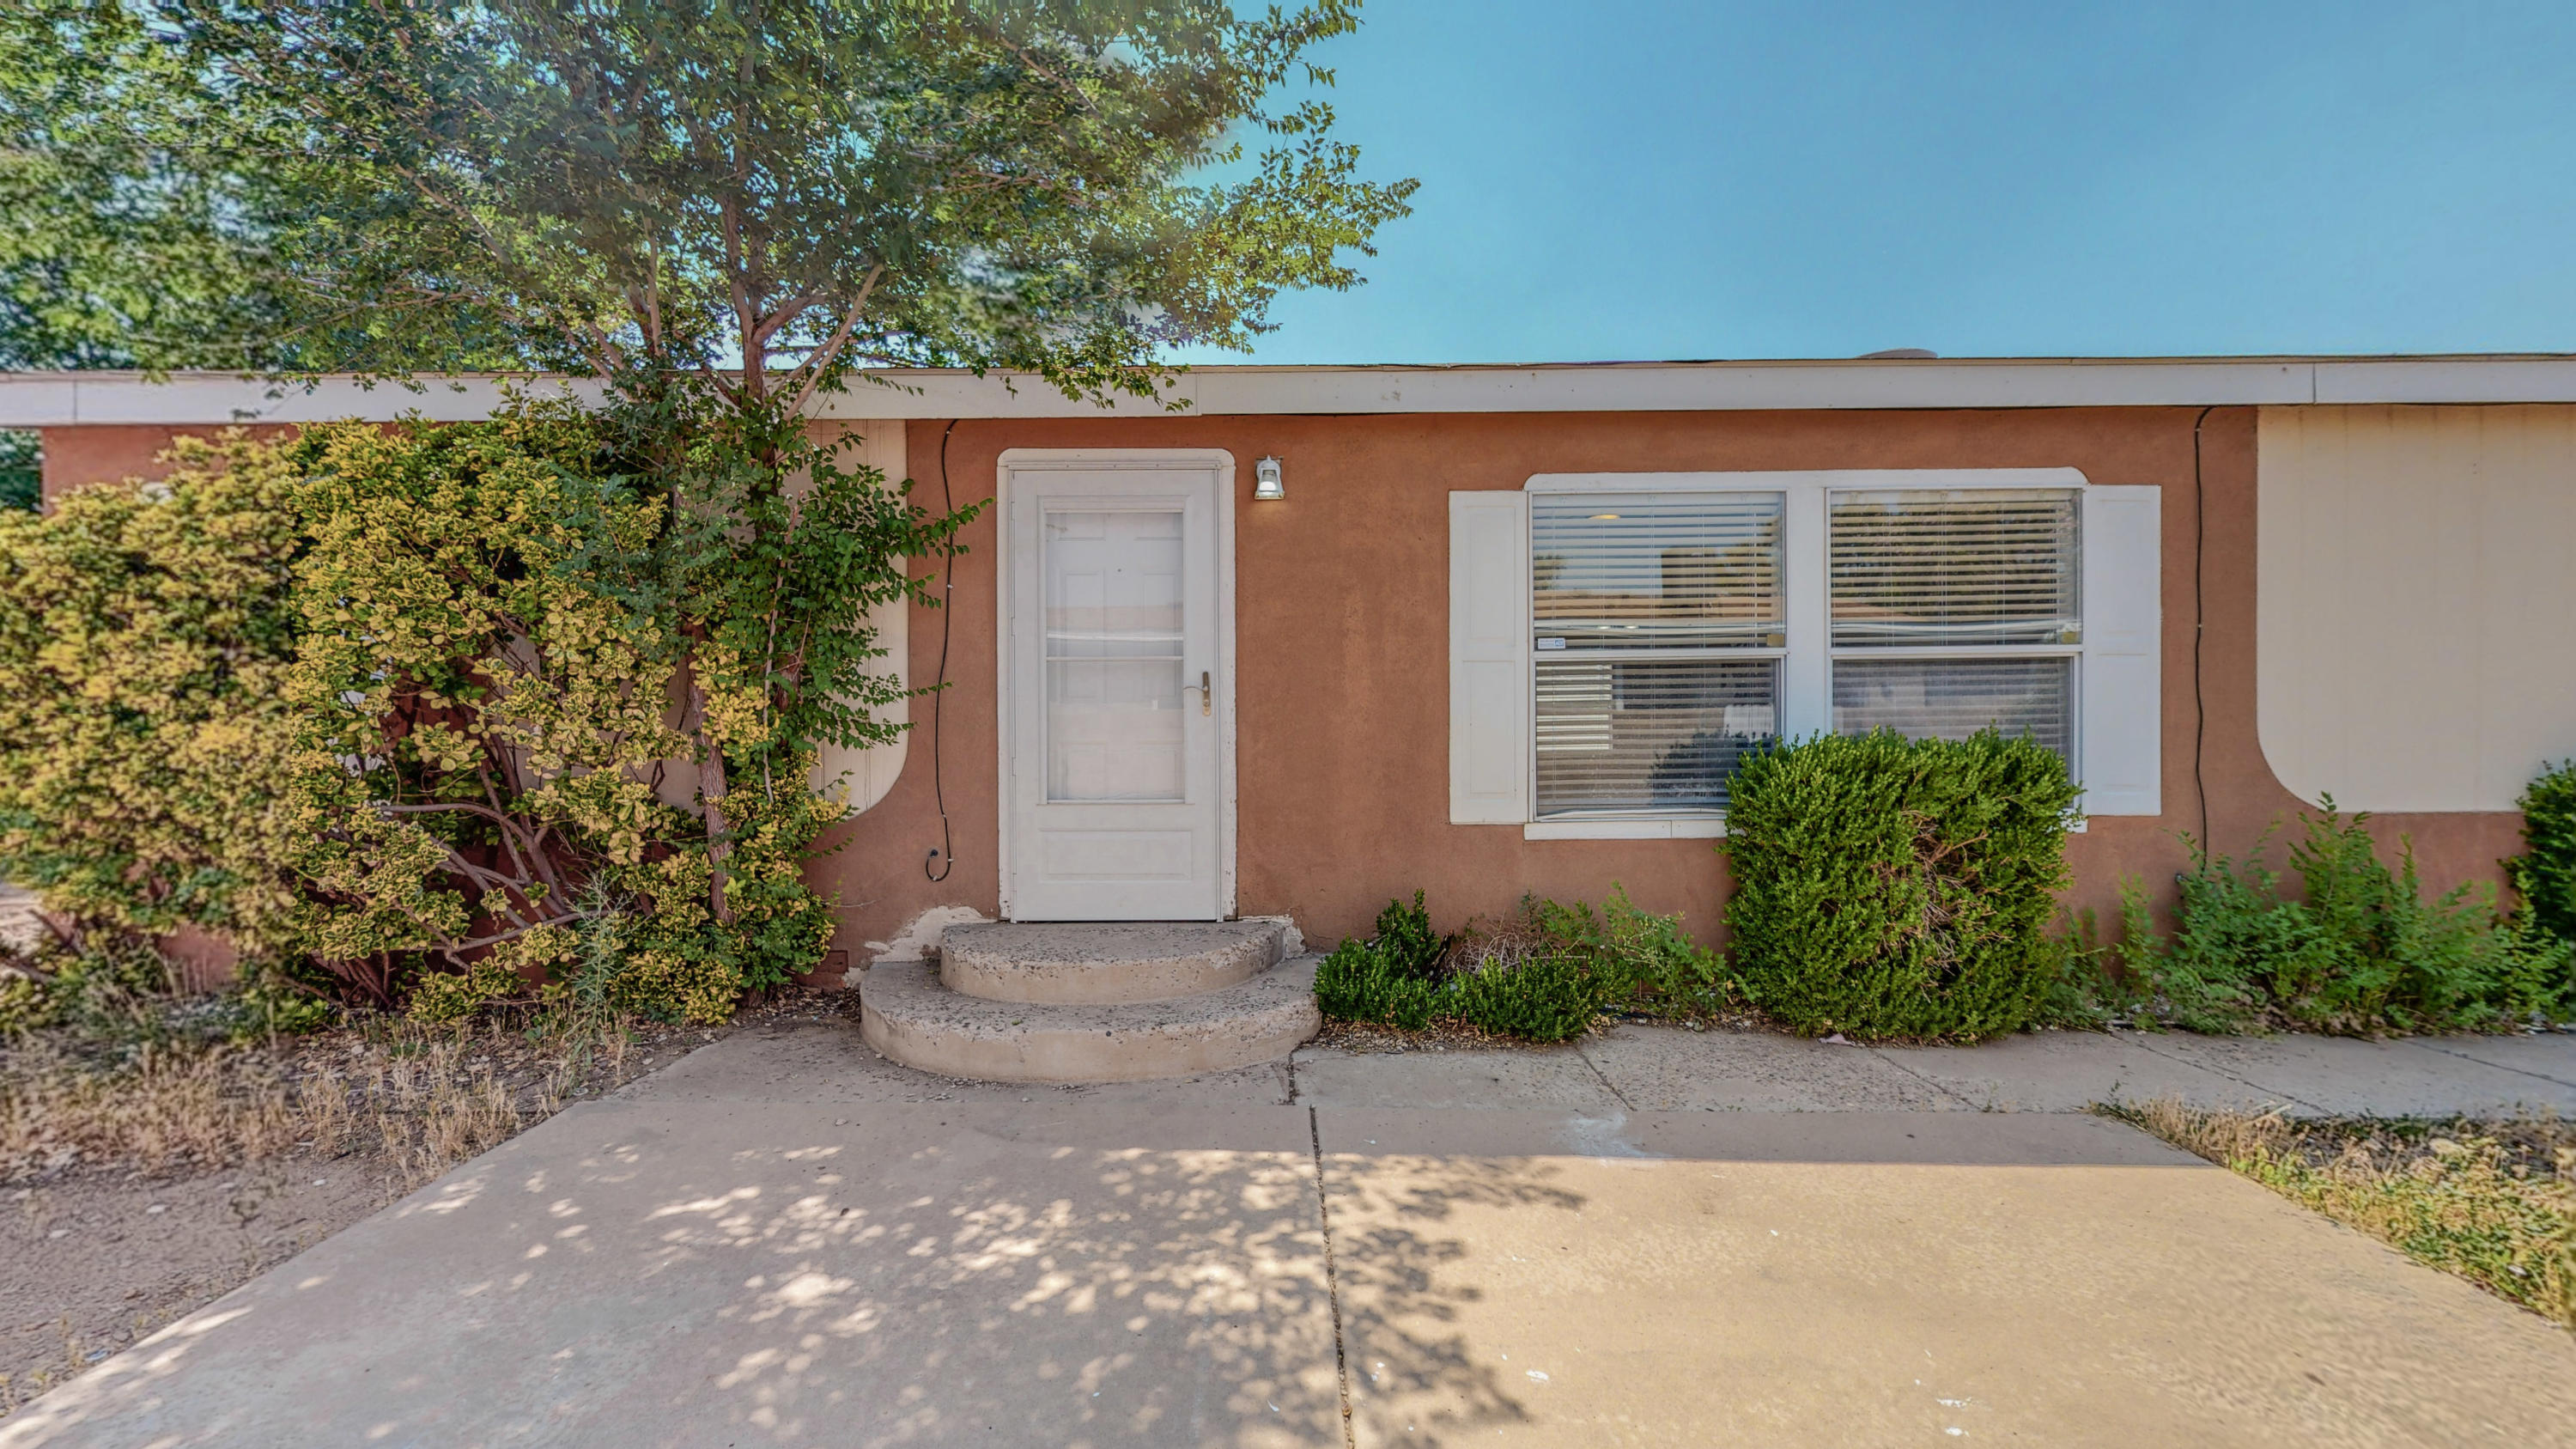 Perfect starter home for an amazing price! This home features a nice sized backyard with shed, large living area and nice sized bedrooms. Conveniently located to the freeway and shopping. Come make this home yours today!